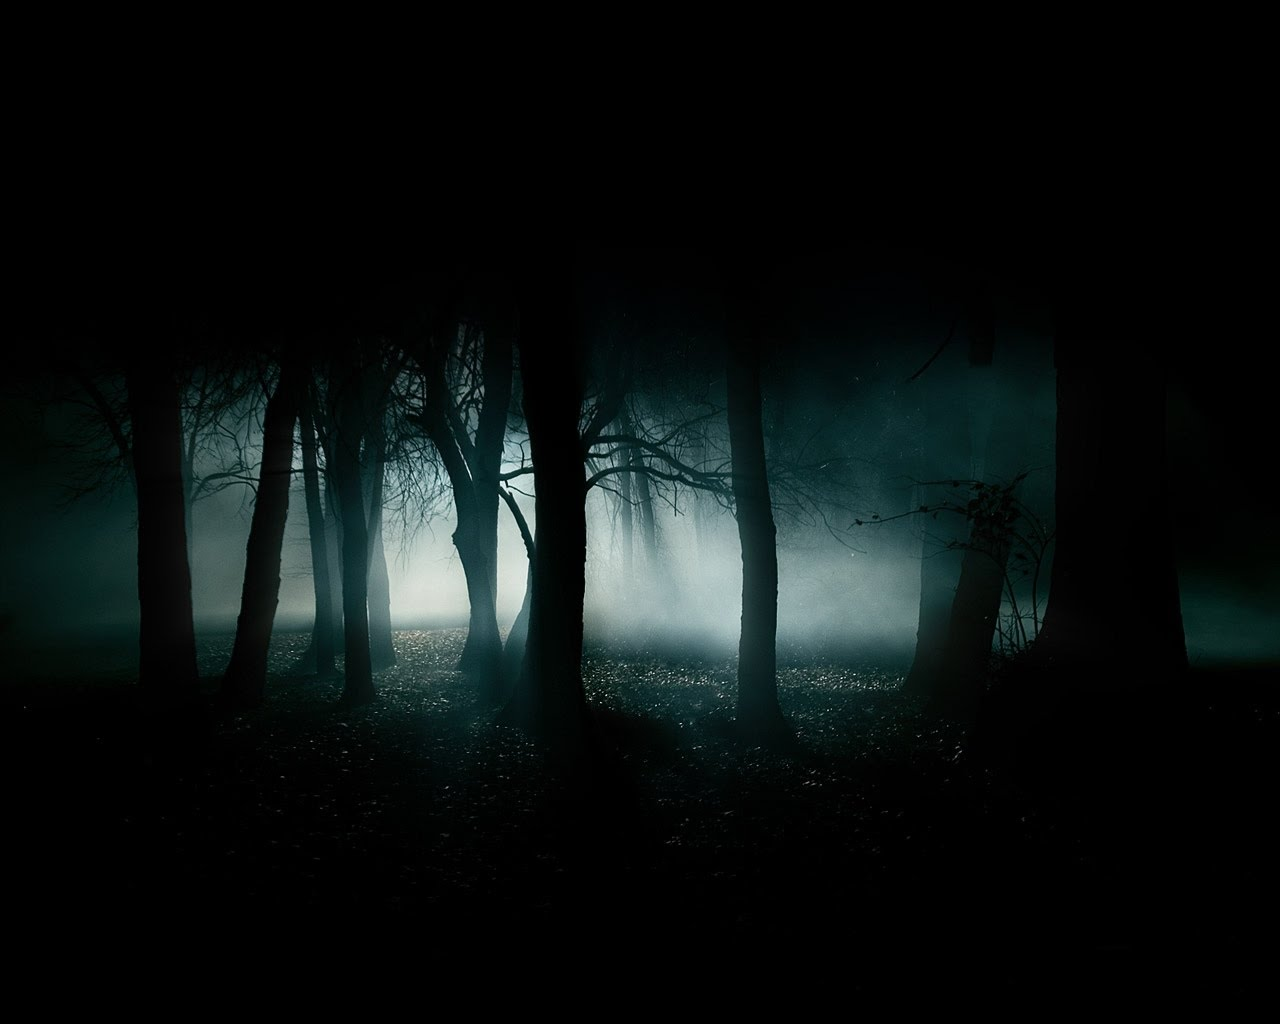 Poems About Darkness 7